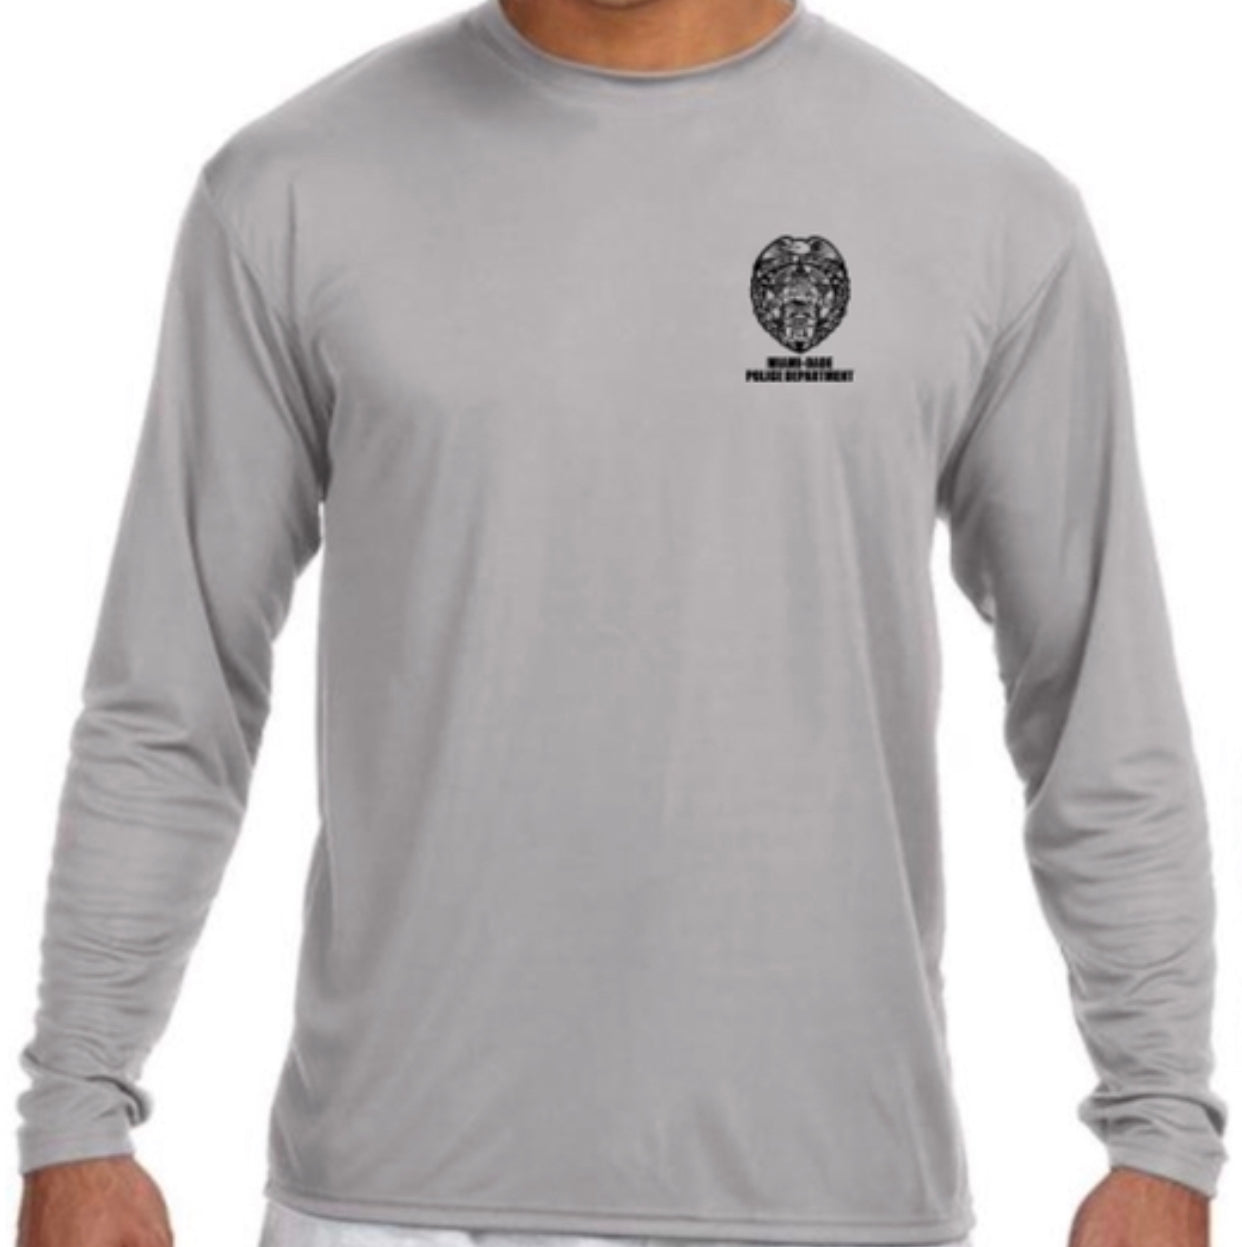 LEO Miami Dade Police Dept. Police Performance Long Sleeve (Gray)